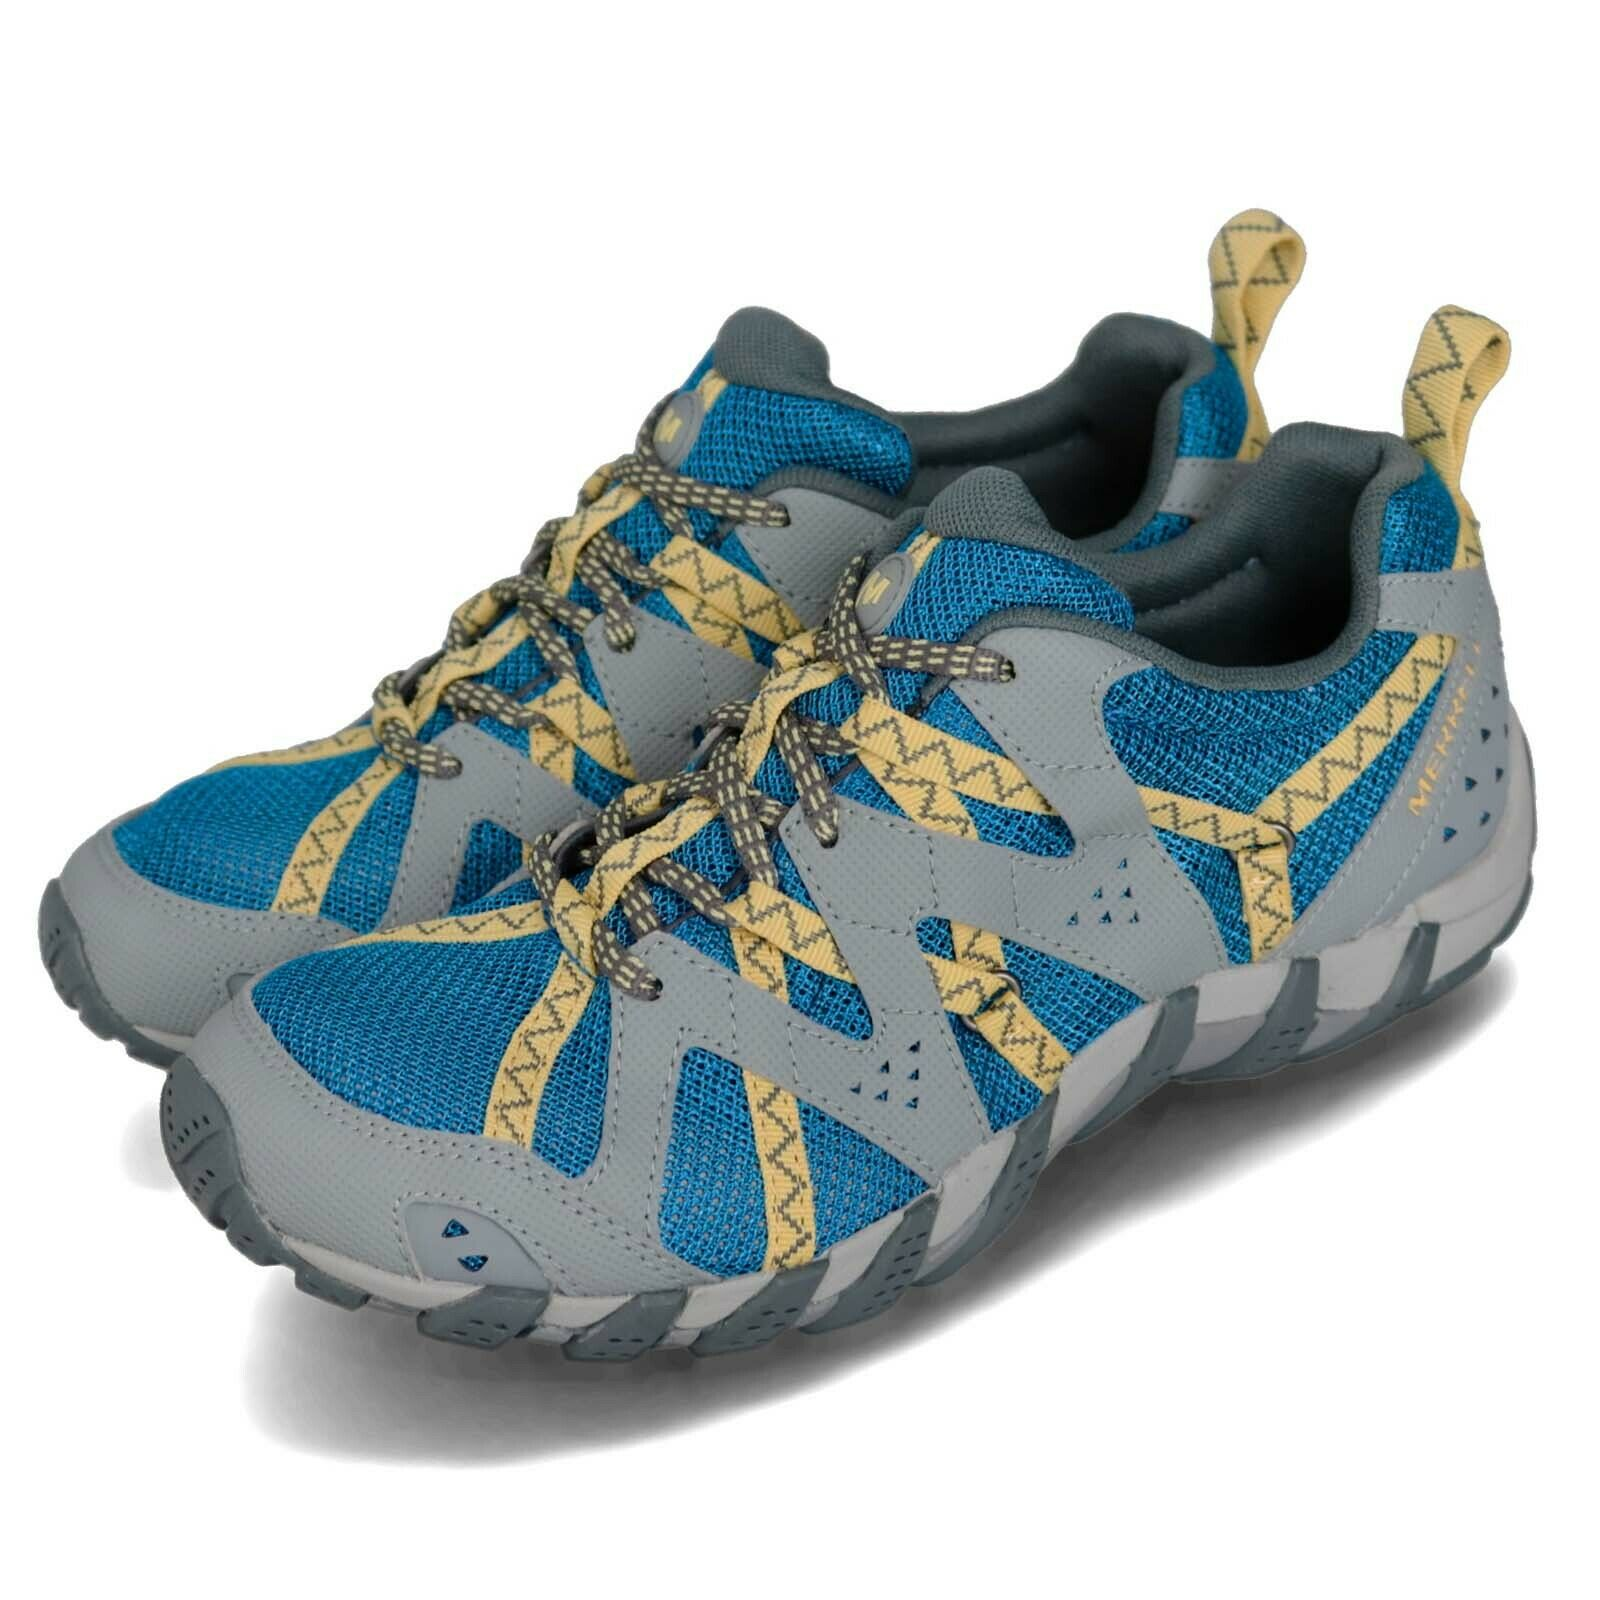 Merrell Waterpro Maipo 2 bluee Grey Lemon Women Outdoors Hiking Water shoes J19582